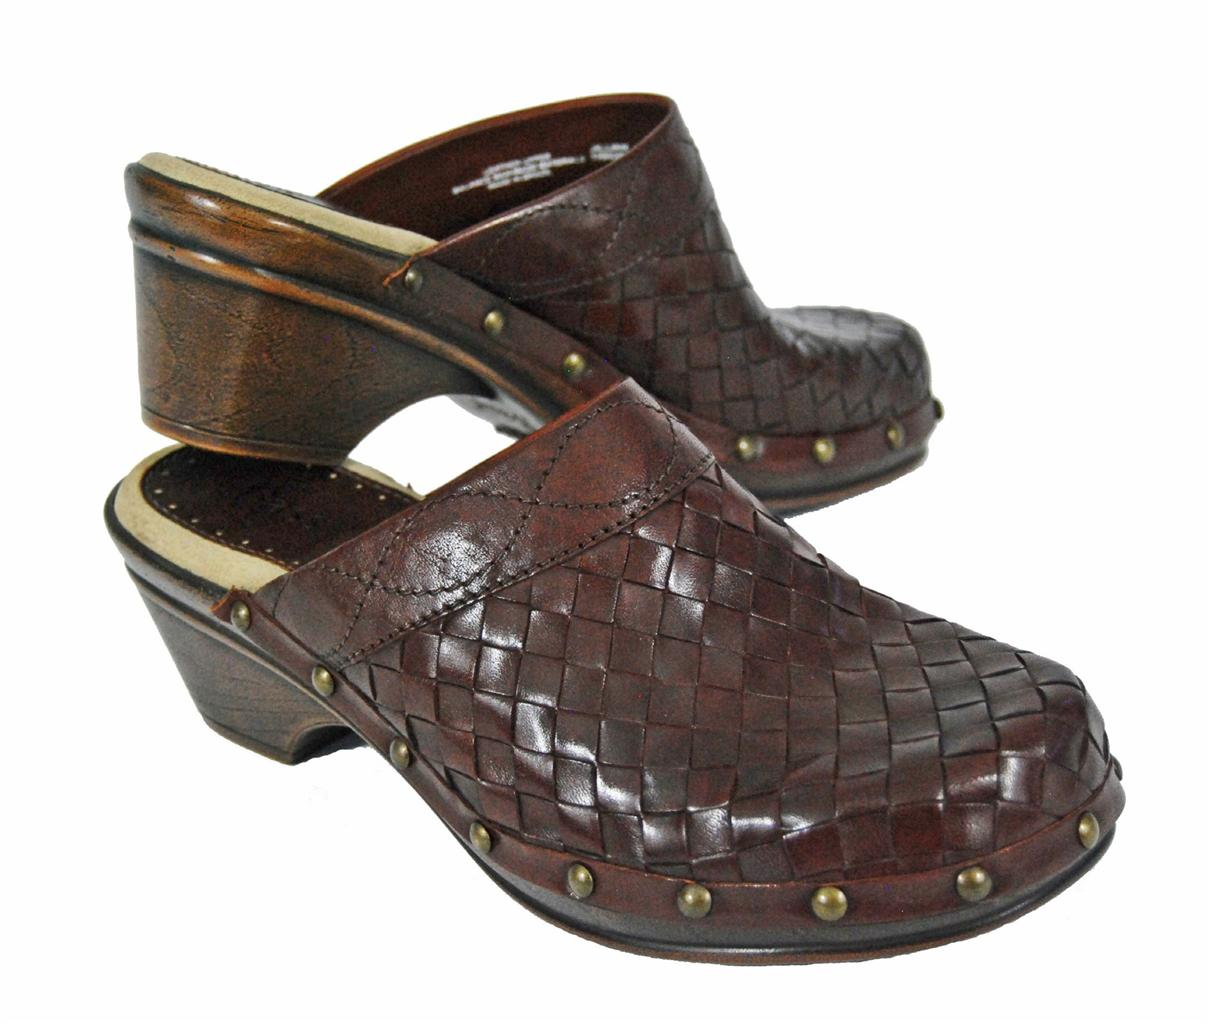 Bass Shoes Womens Clogs